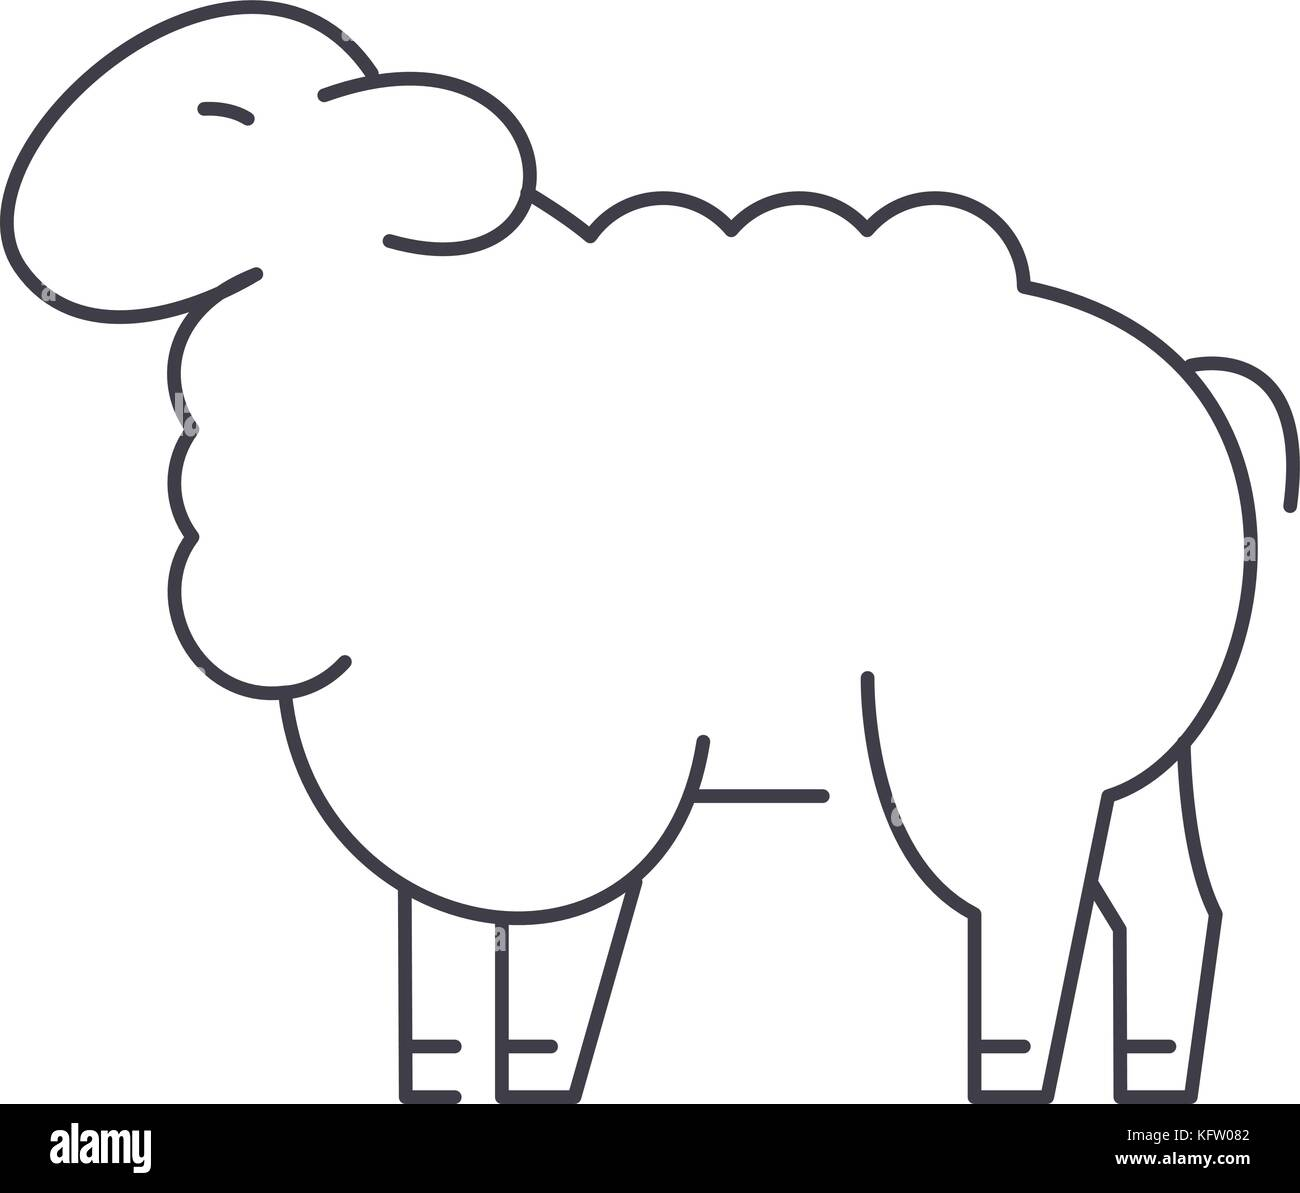 sheep vector line icon, sign, illustration on background, editable strokes Stock Vector